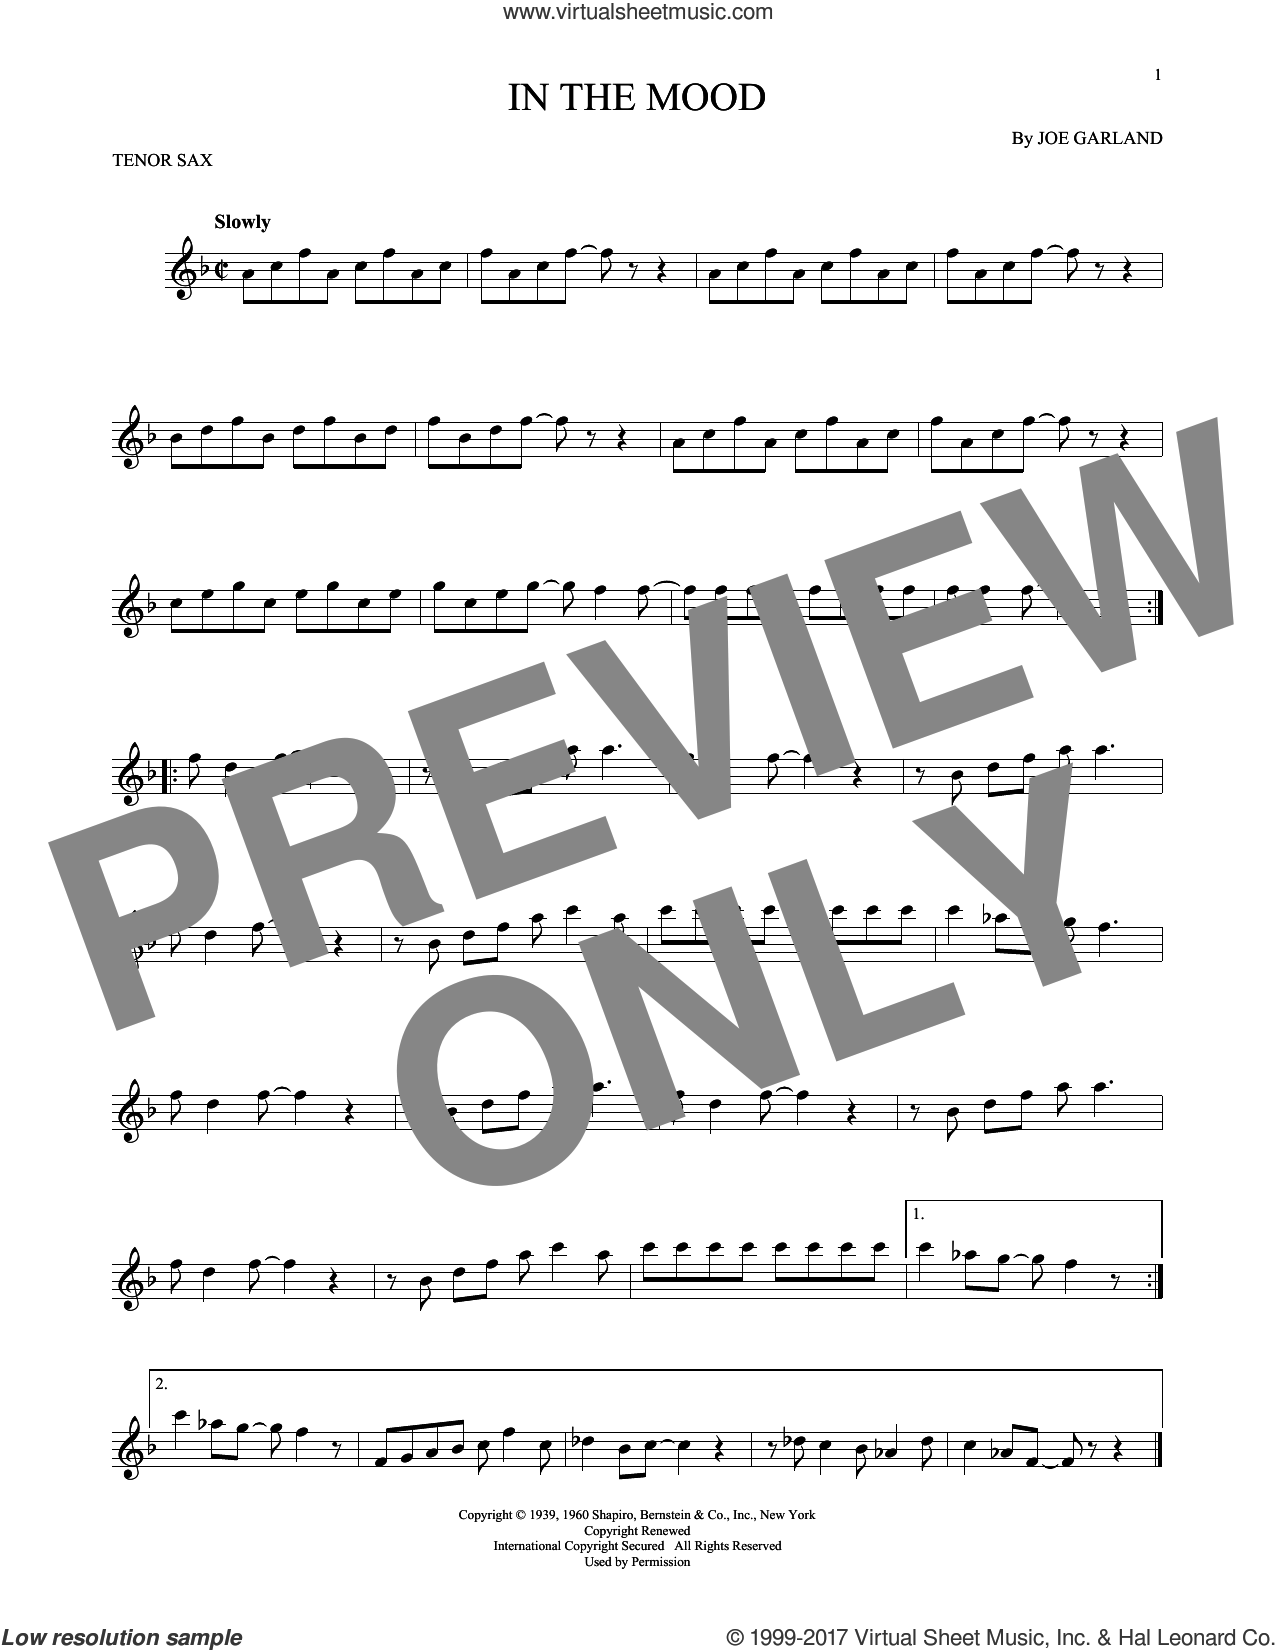 In The Mood sheet music for tenor saxophone solo by Joe Garland and Glenn Miller & His Orchestra, intermediate skill level